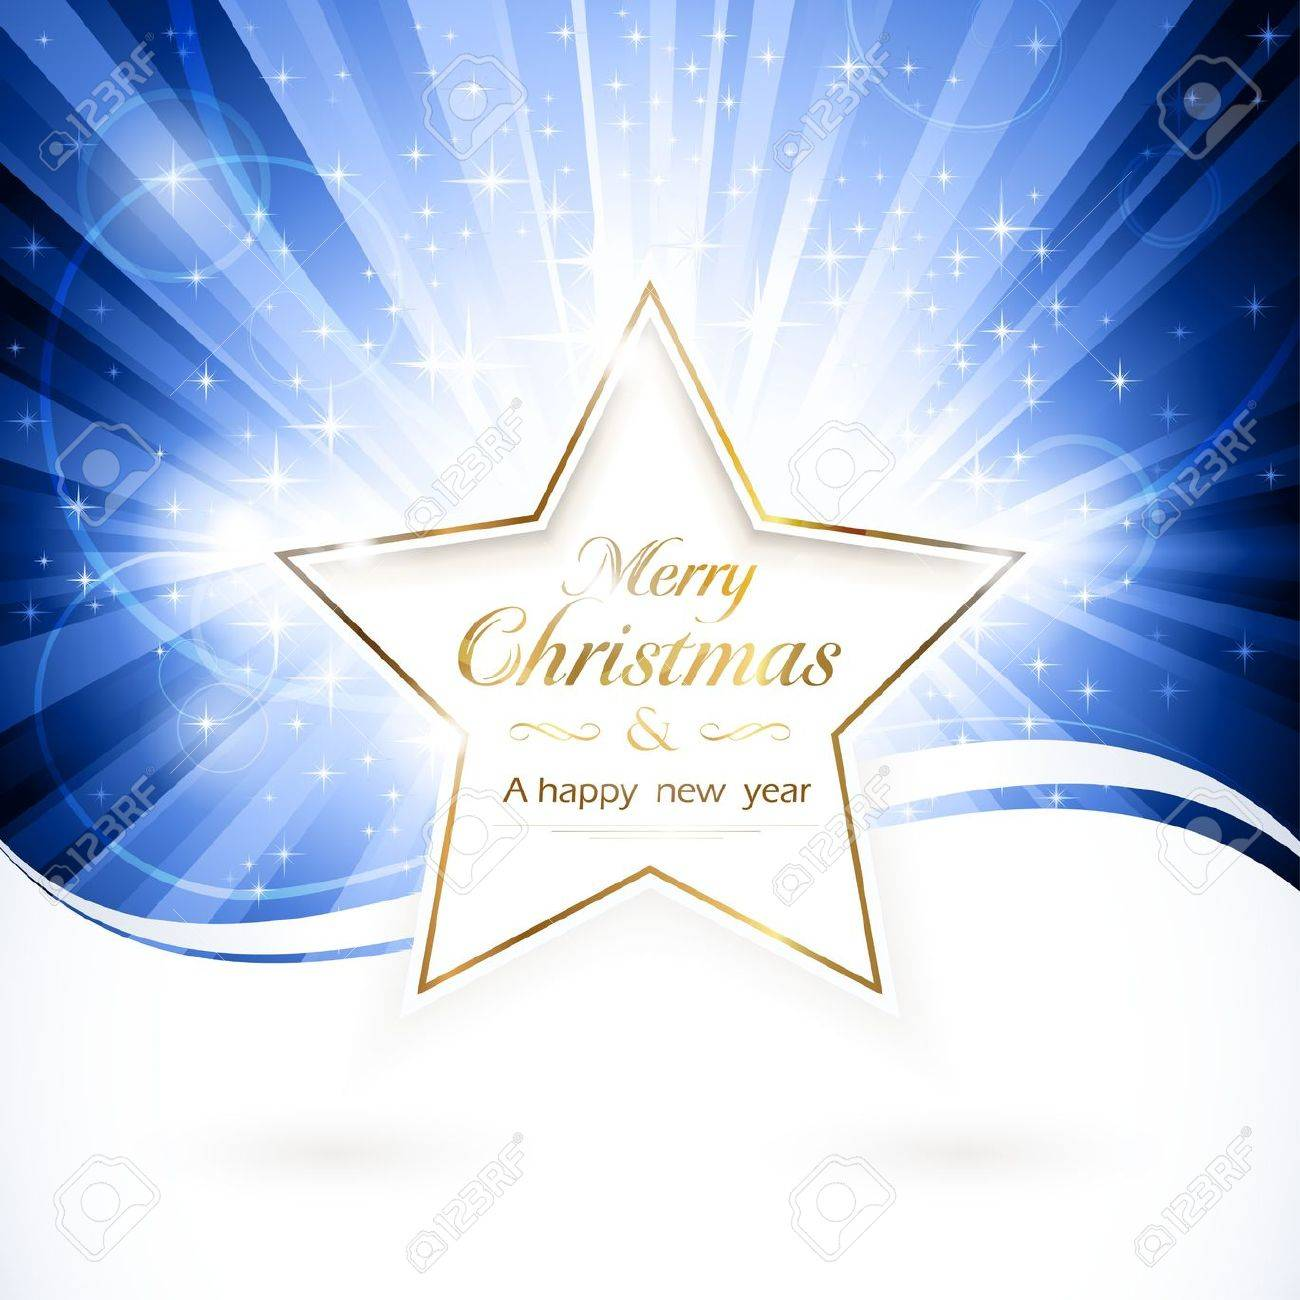 Shiny Golden Star With The Words 'Merry Christmas And A Happy ...